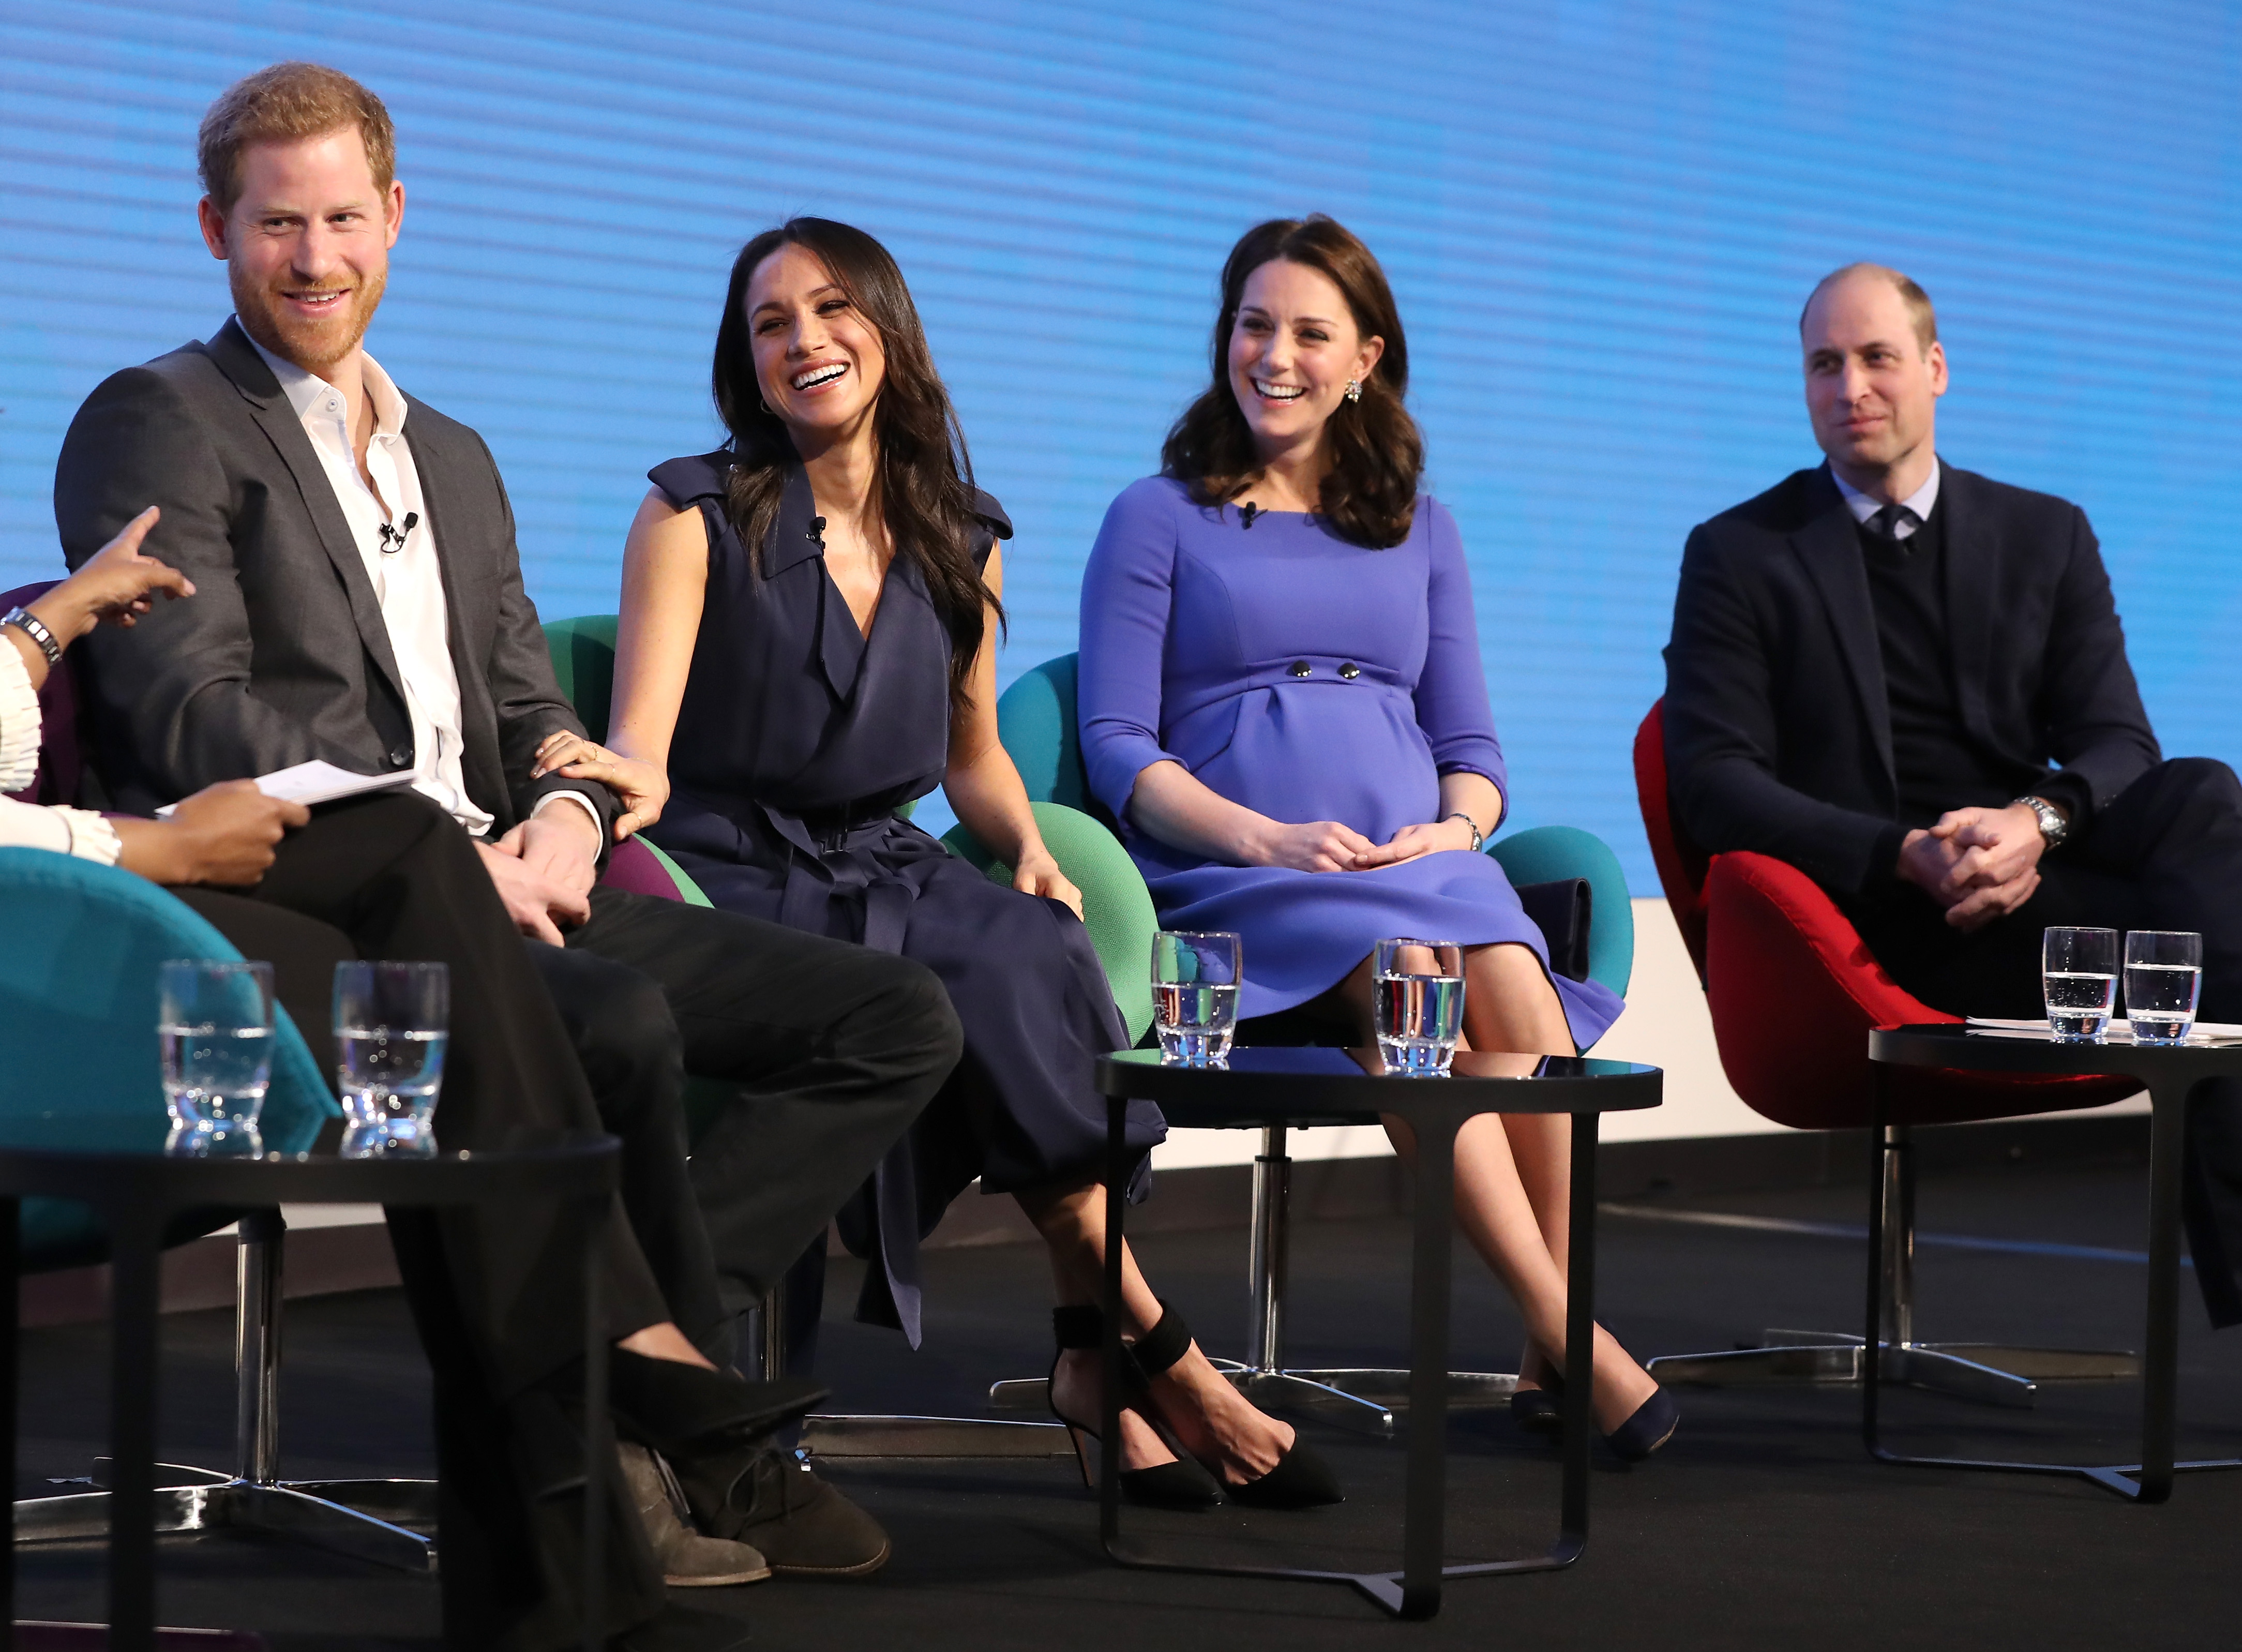 Prince Harry, Meghan Markle, Catherine, Duchess of Cambridge and Prince William, Duke of Cambridge attend the first annual Royal Foundation Forum held at Aviva on February 28, 2018 in London, England. (Photo by Chris Jackson - WPA Pool/Getty Images)